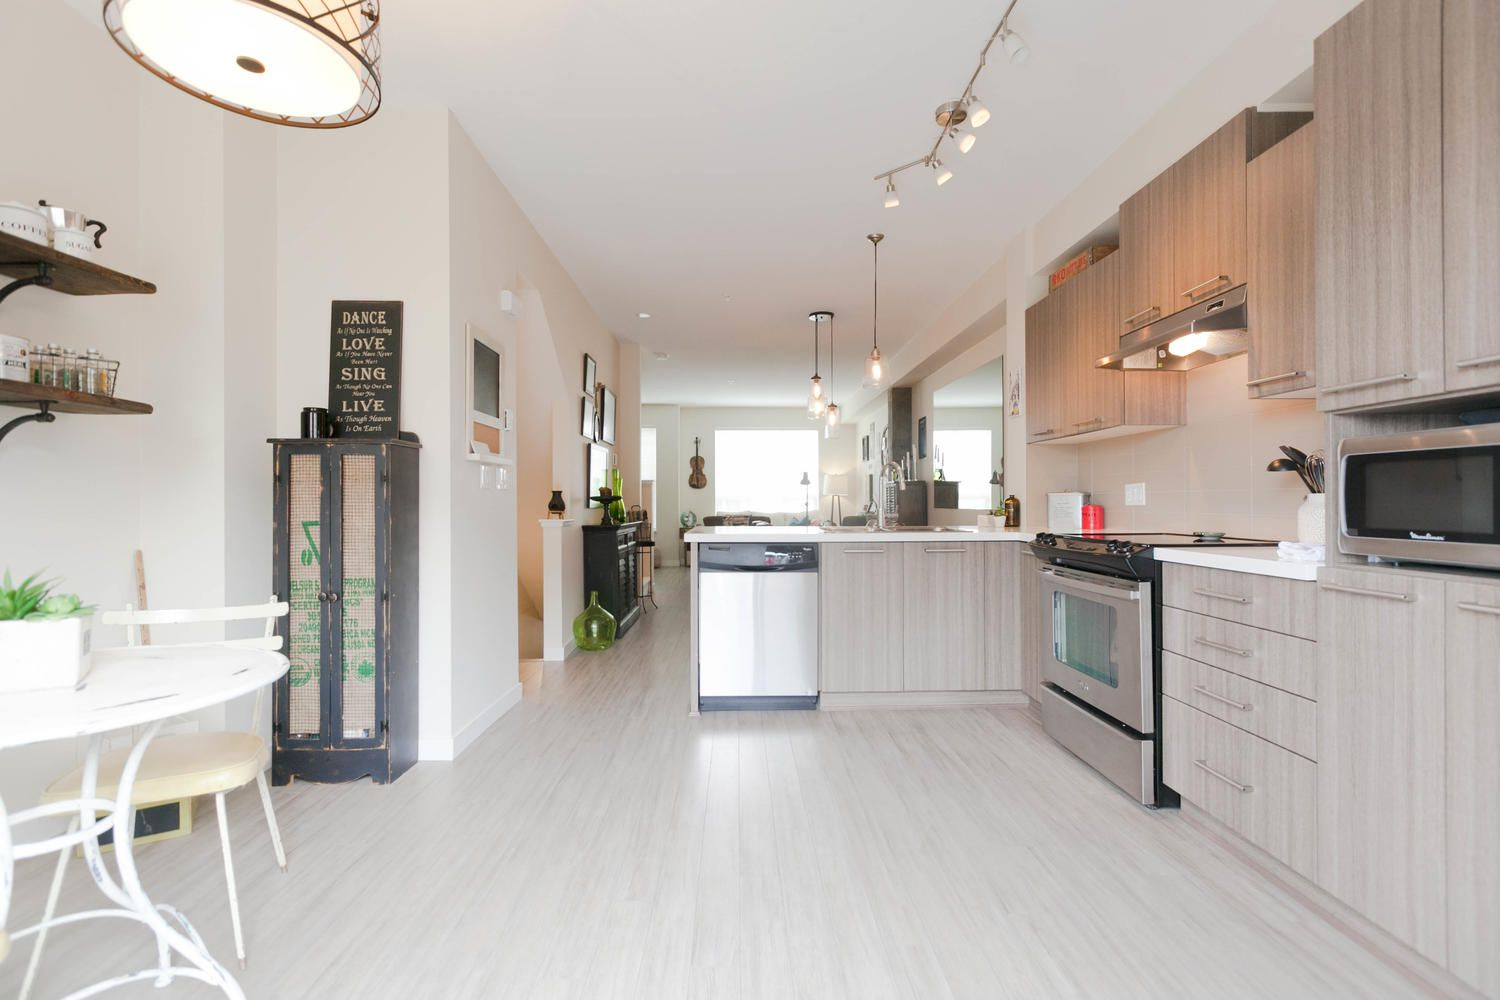 """Photo 15: Photos: 97 7938 209 Street in Langley: Willoughby Heights Townhouse for sale in """"Red Maple Park"""" : MLS®# R2260950"""